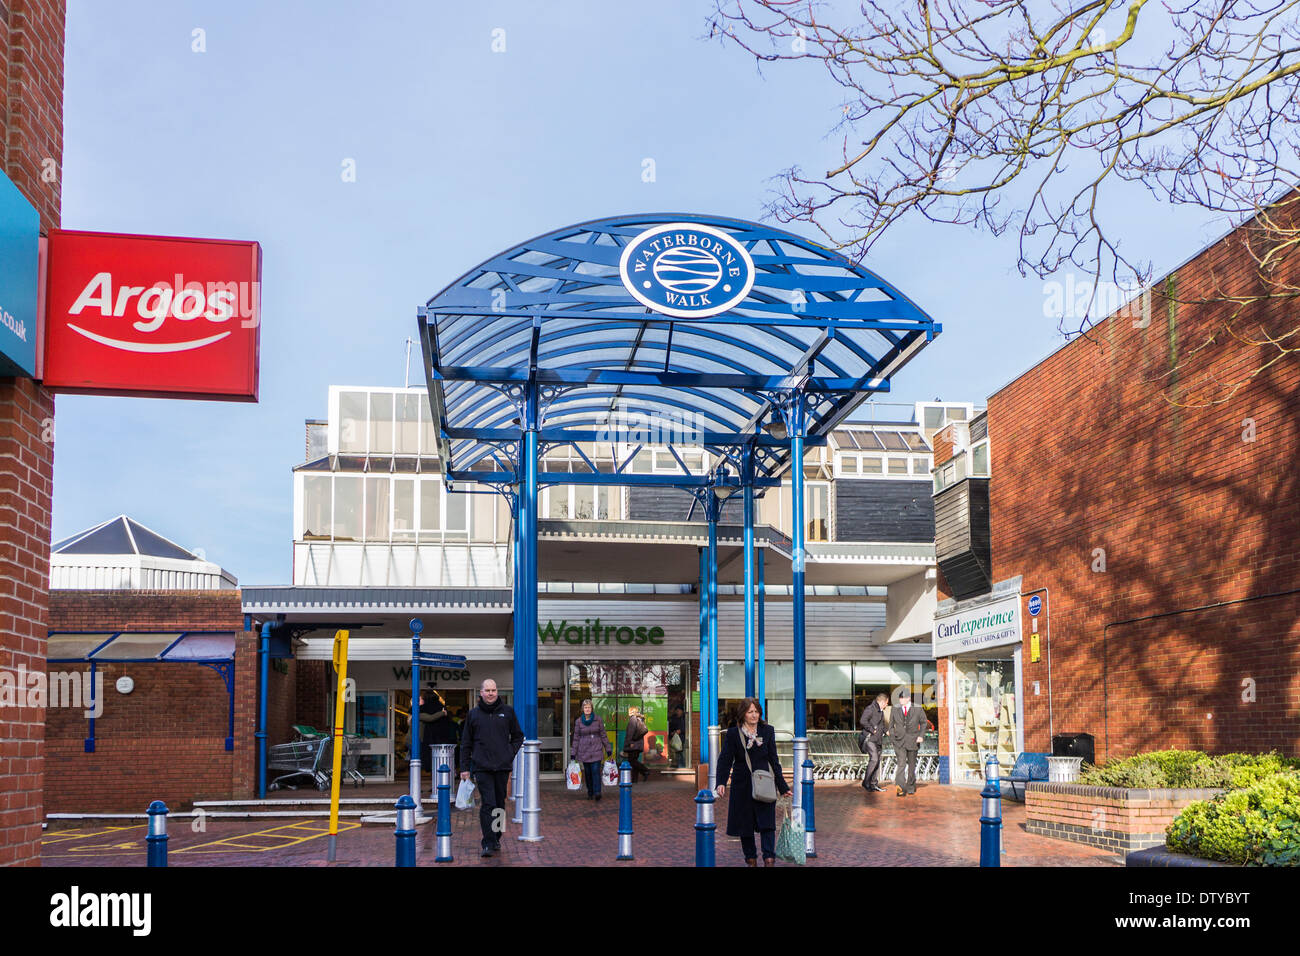 Waterborne Walk shopping centre - Leighton Buzzard - Stock Image